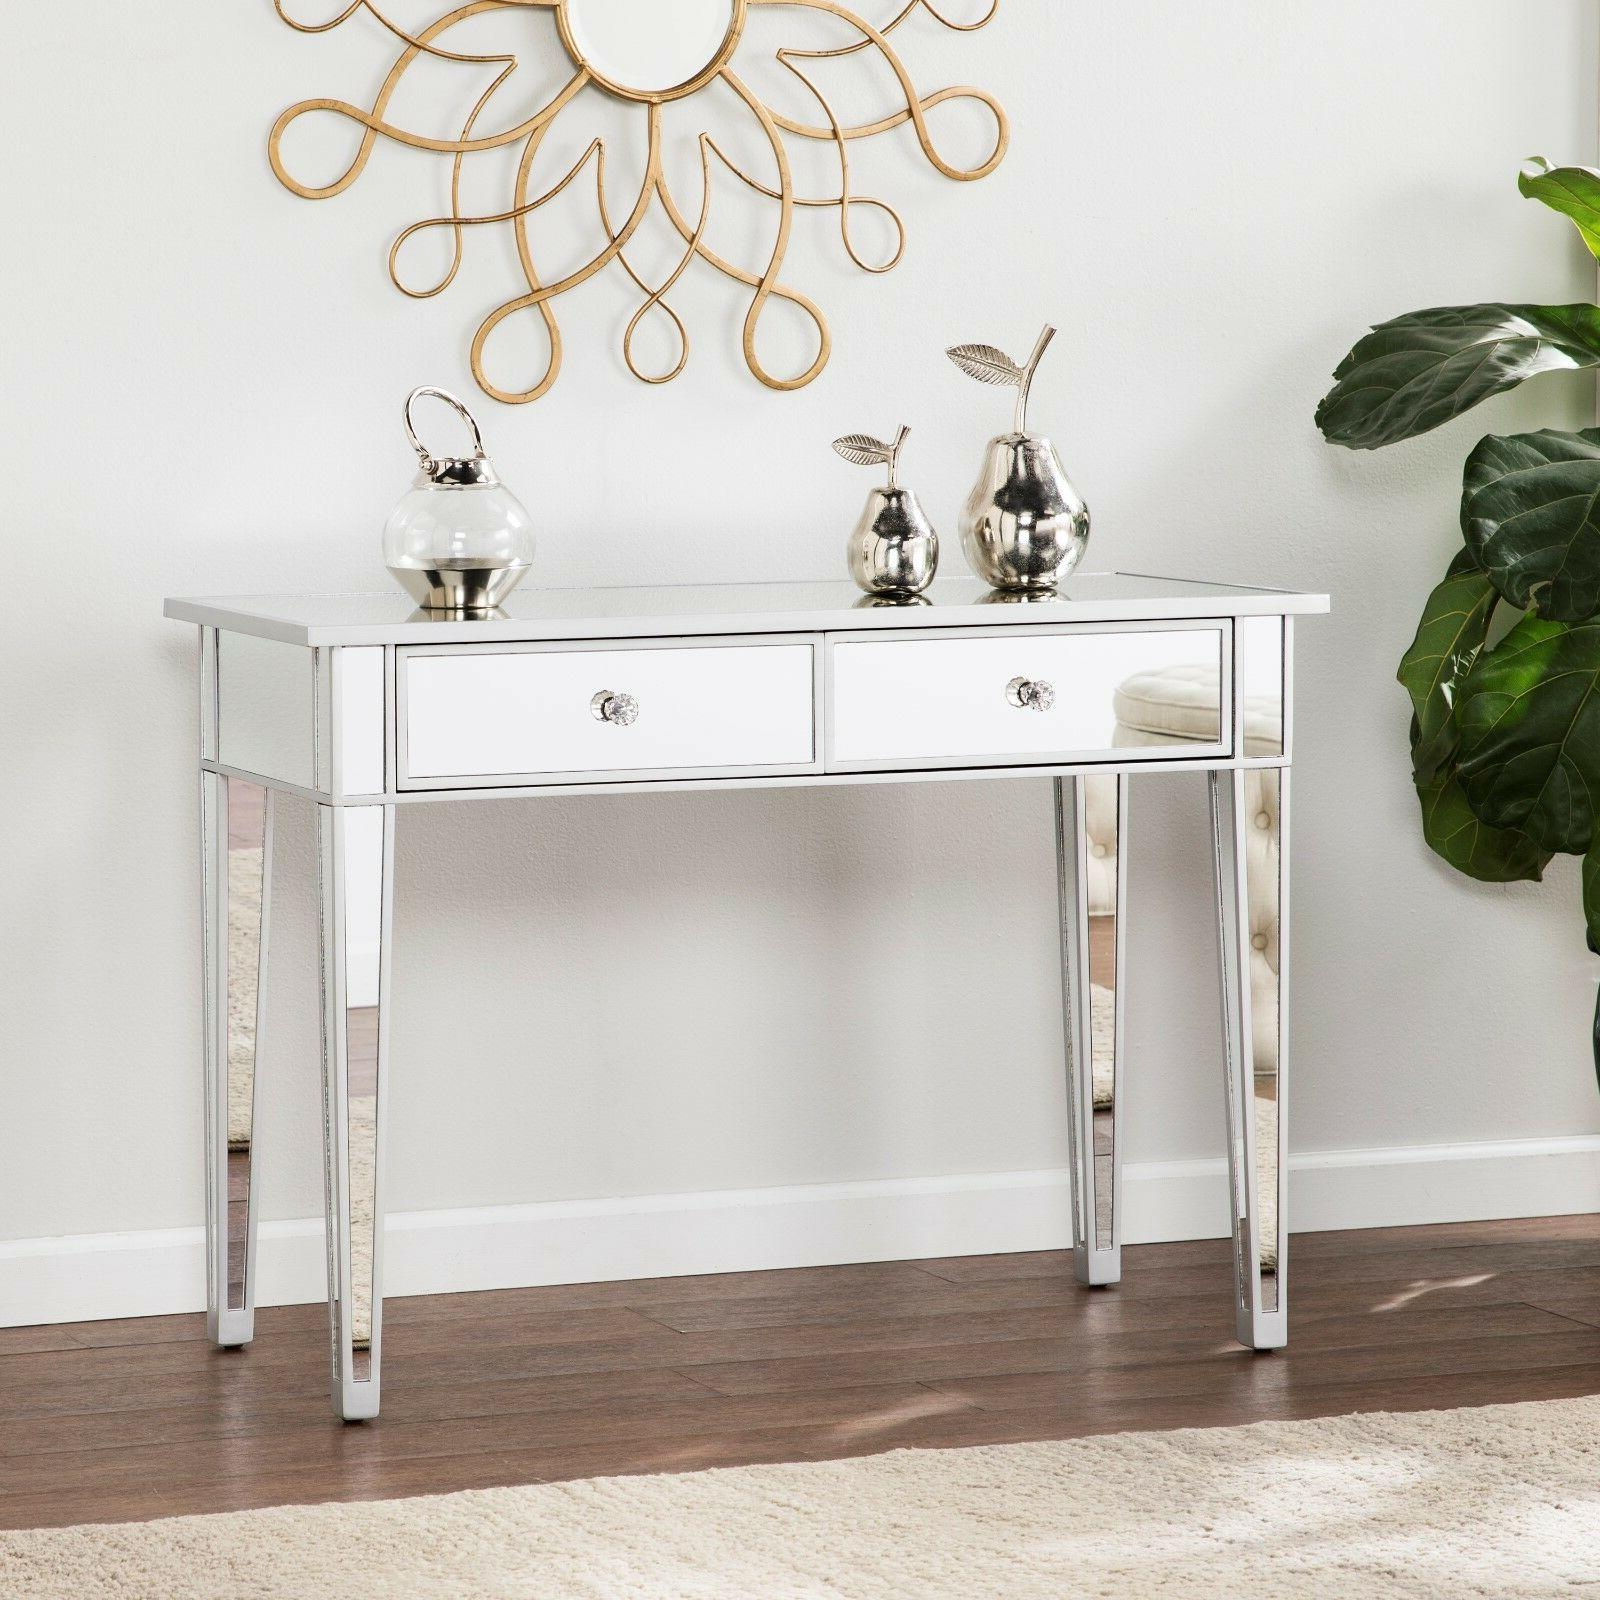 cmt36919 silver mirrored 2 drawers console table